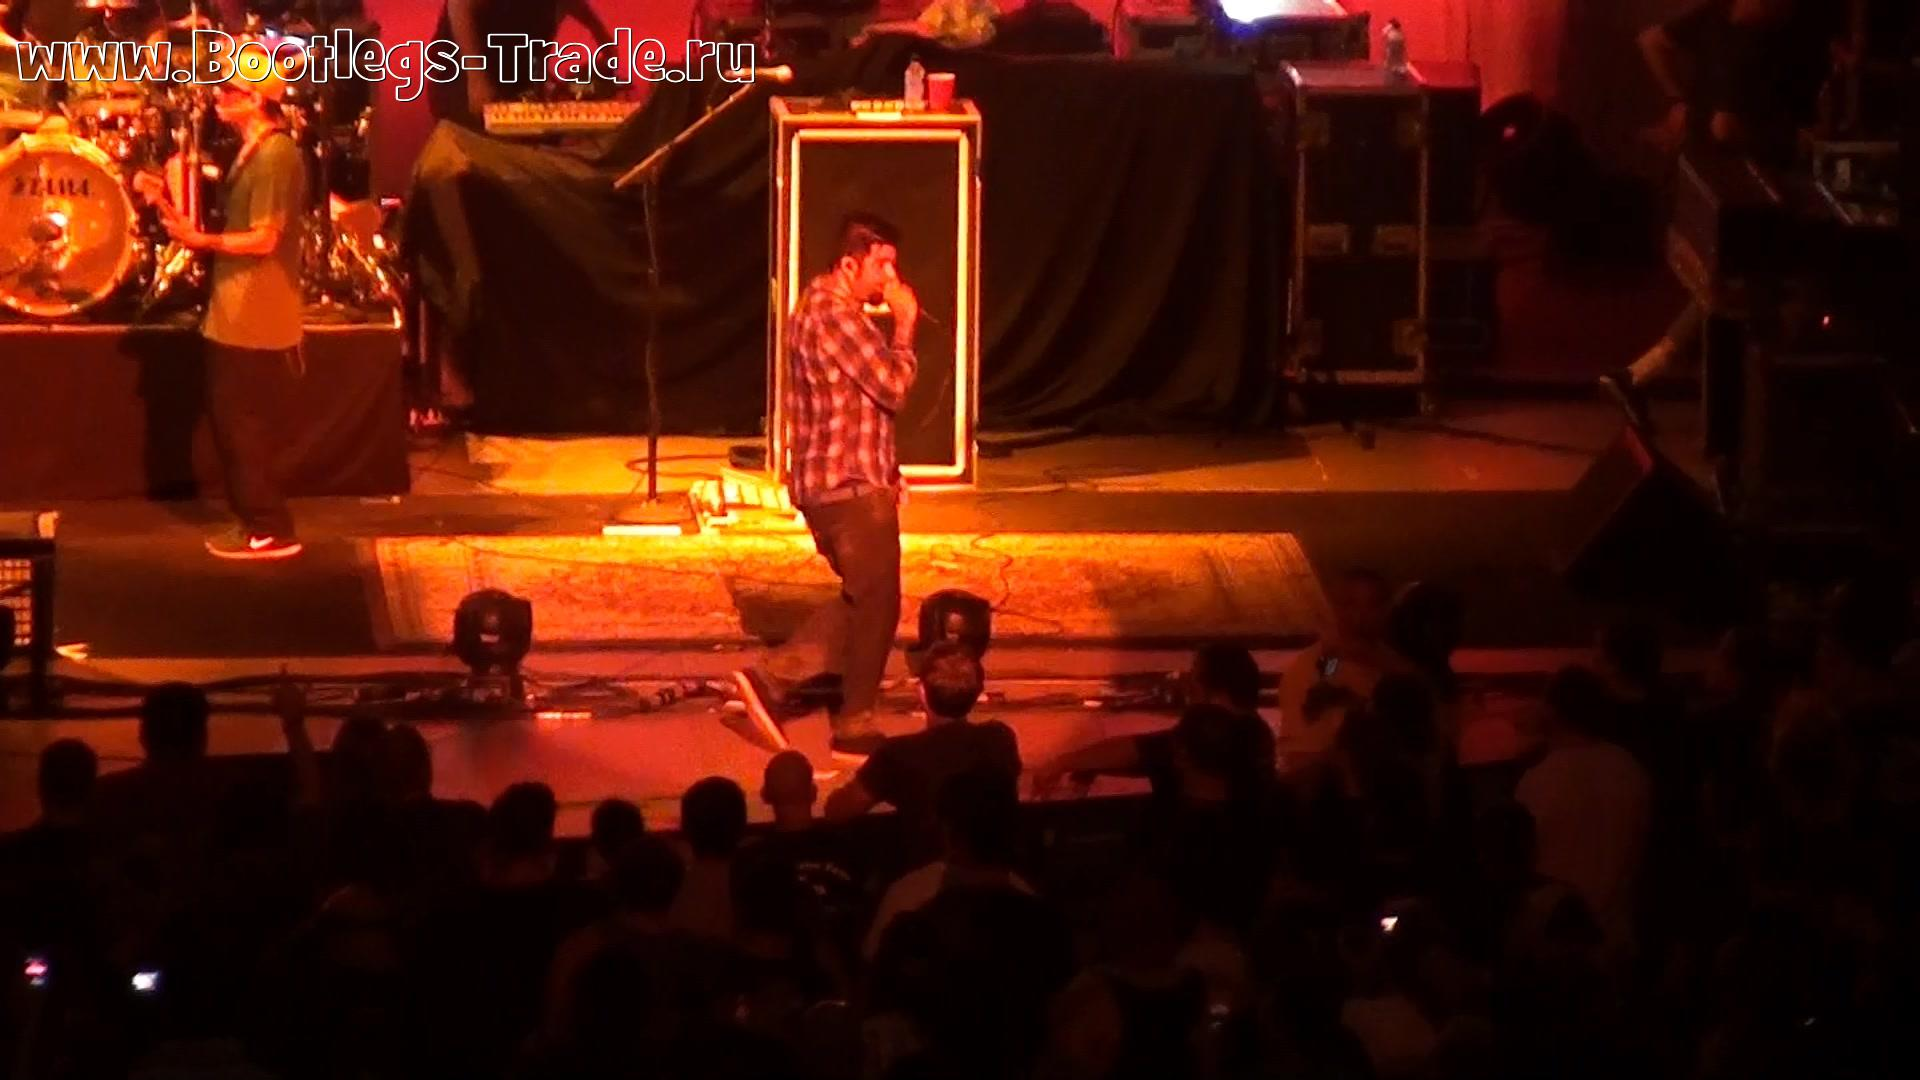 Deftones 2012-08-04 PNC Bank Arts Center, Holmdel, NJ, USA (HD 1080)